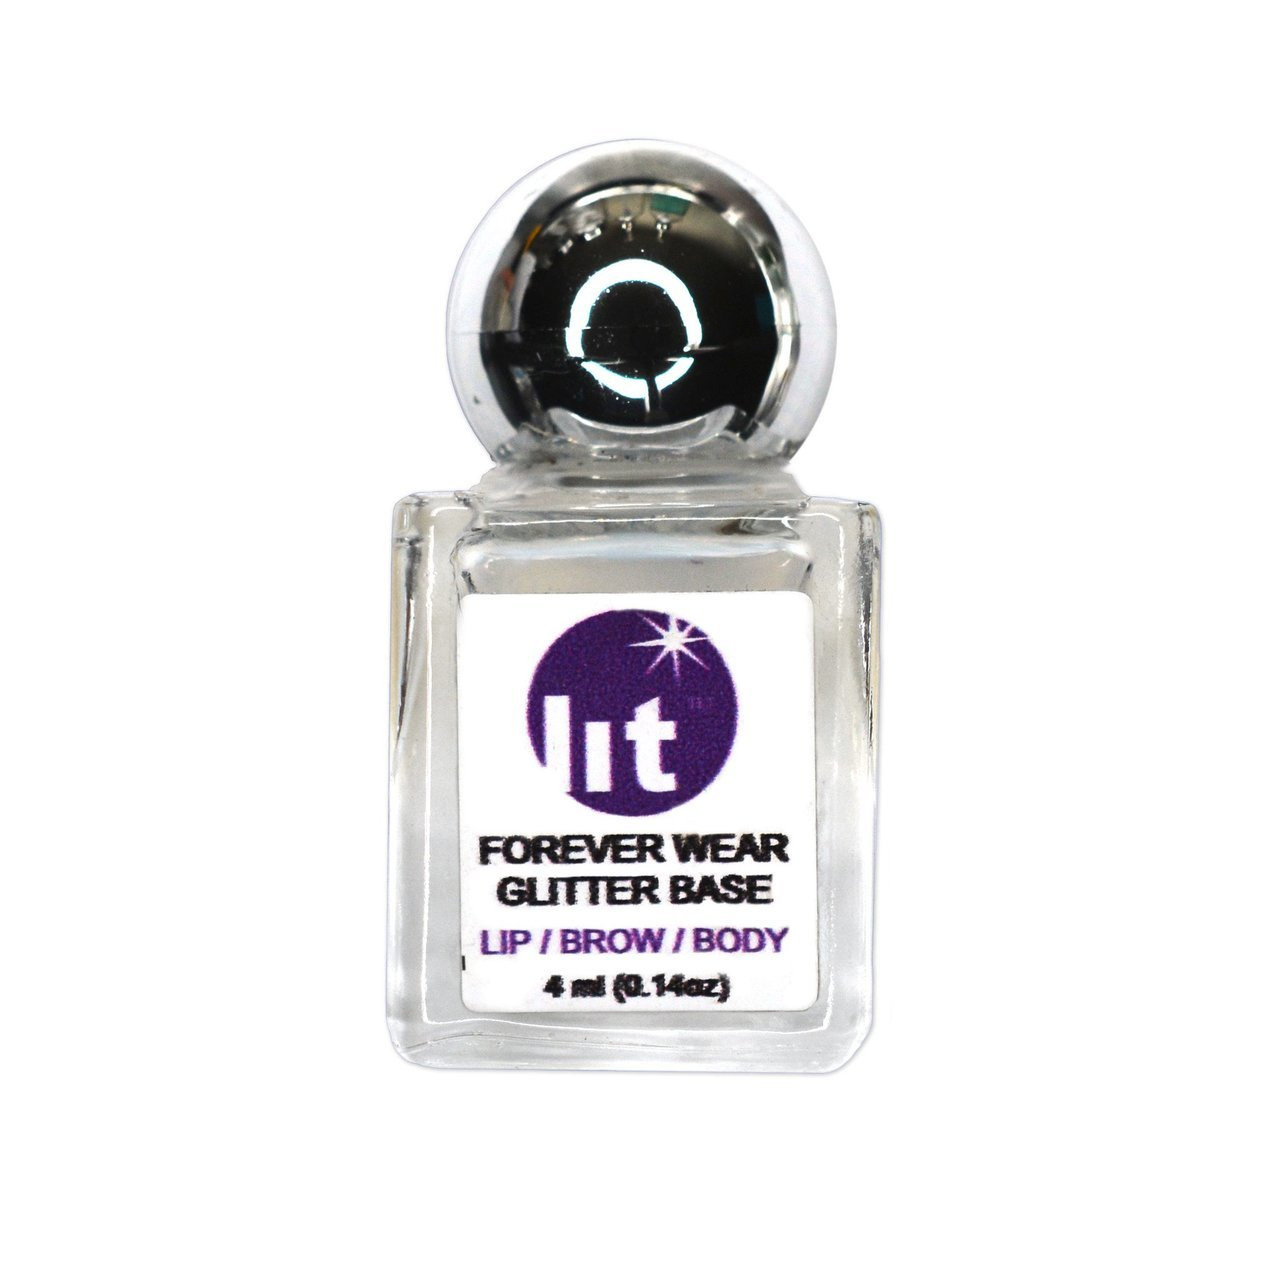 Lit Cosmetics Forever Wear Glitter Base, 4 ml | Professional Makeup for Live Performance | PNTA